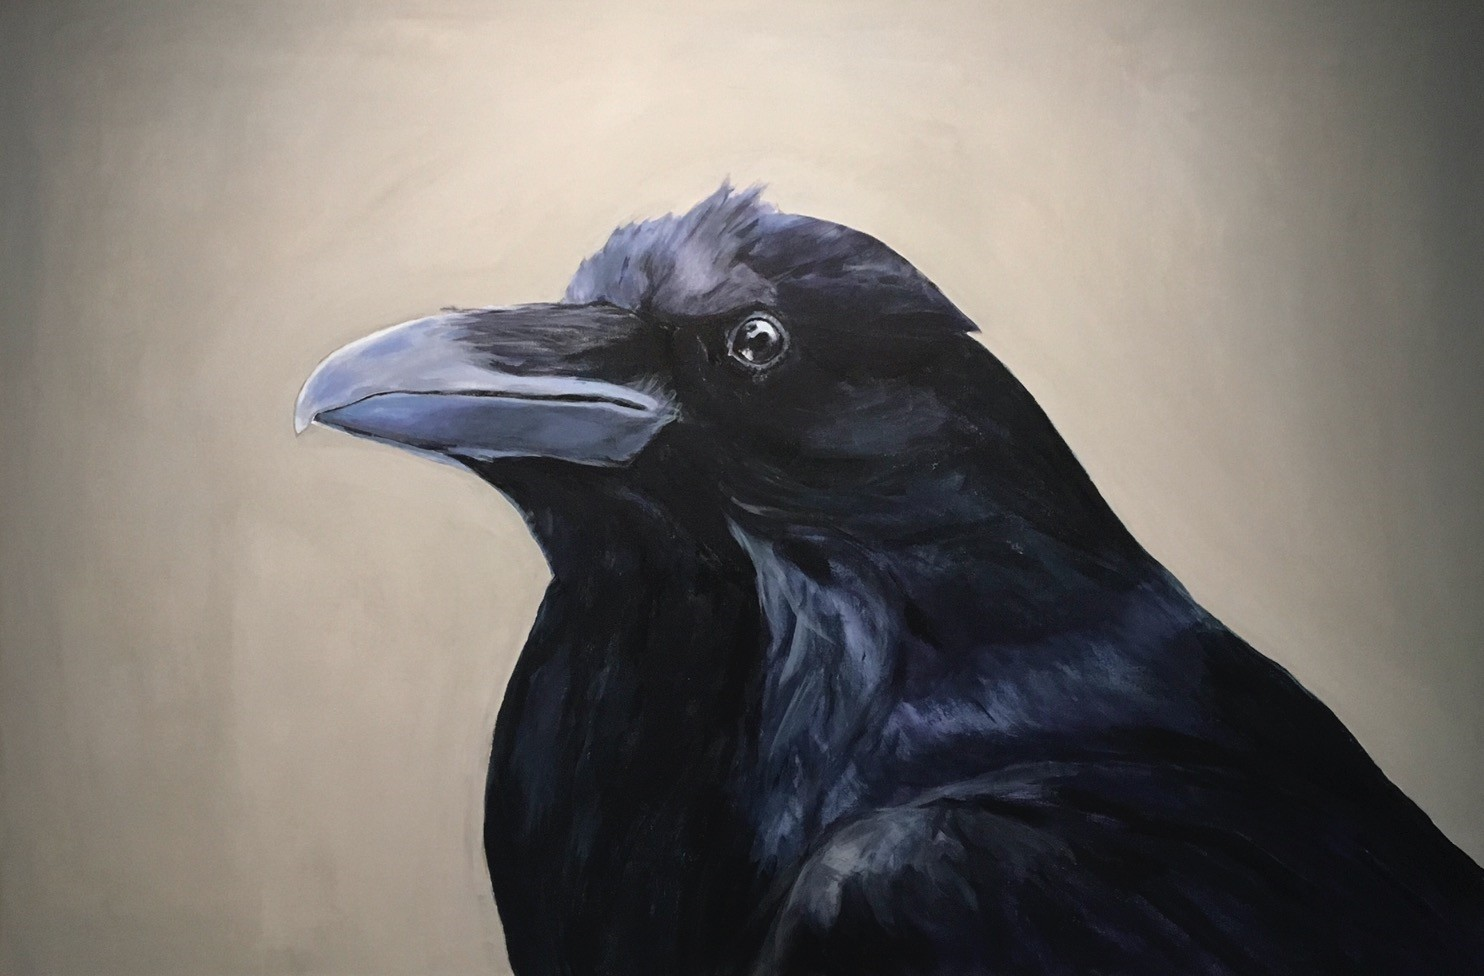 In her u201cRaven Portraitsu201d (2018) the artist Elmas Deniz portrayed ravens as dignified, complex beings for her current solo show at Pilot Gallery.